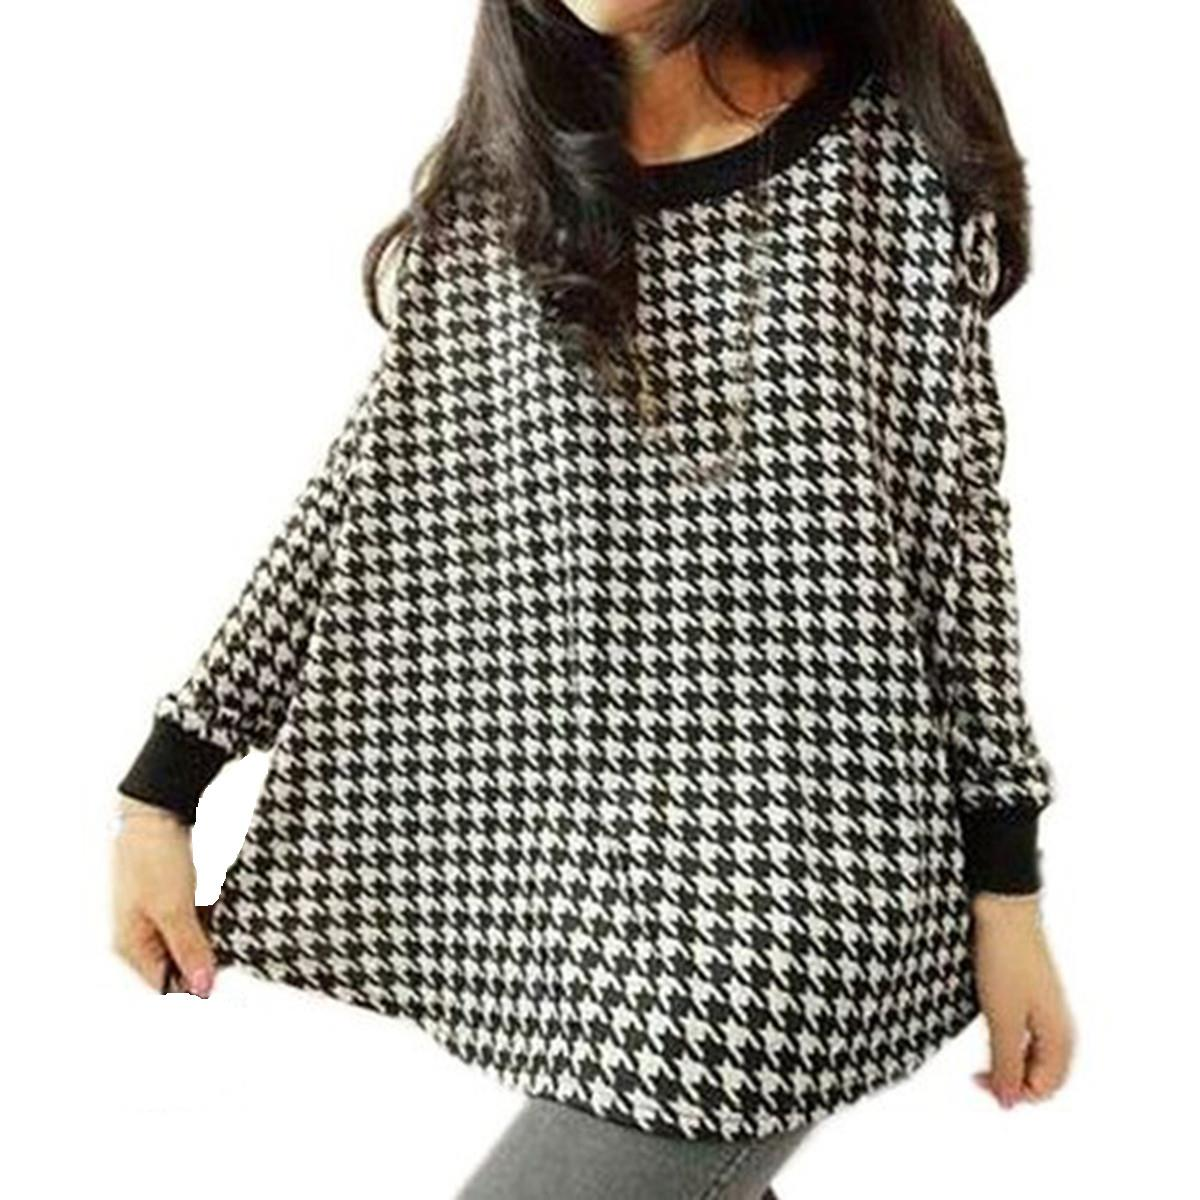 Retro Vintage T-shirt 2016 Spring Fall Women Houndstooth Crew Neck Long Sleeve Plaid Loose Tee T-shirts Grid Tops Plus Size 3XL(China (Mainland))